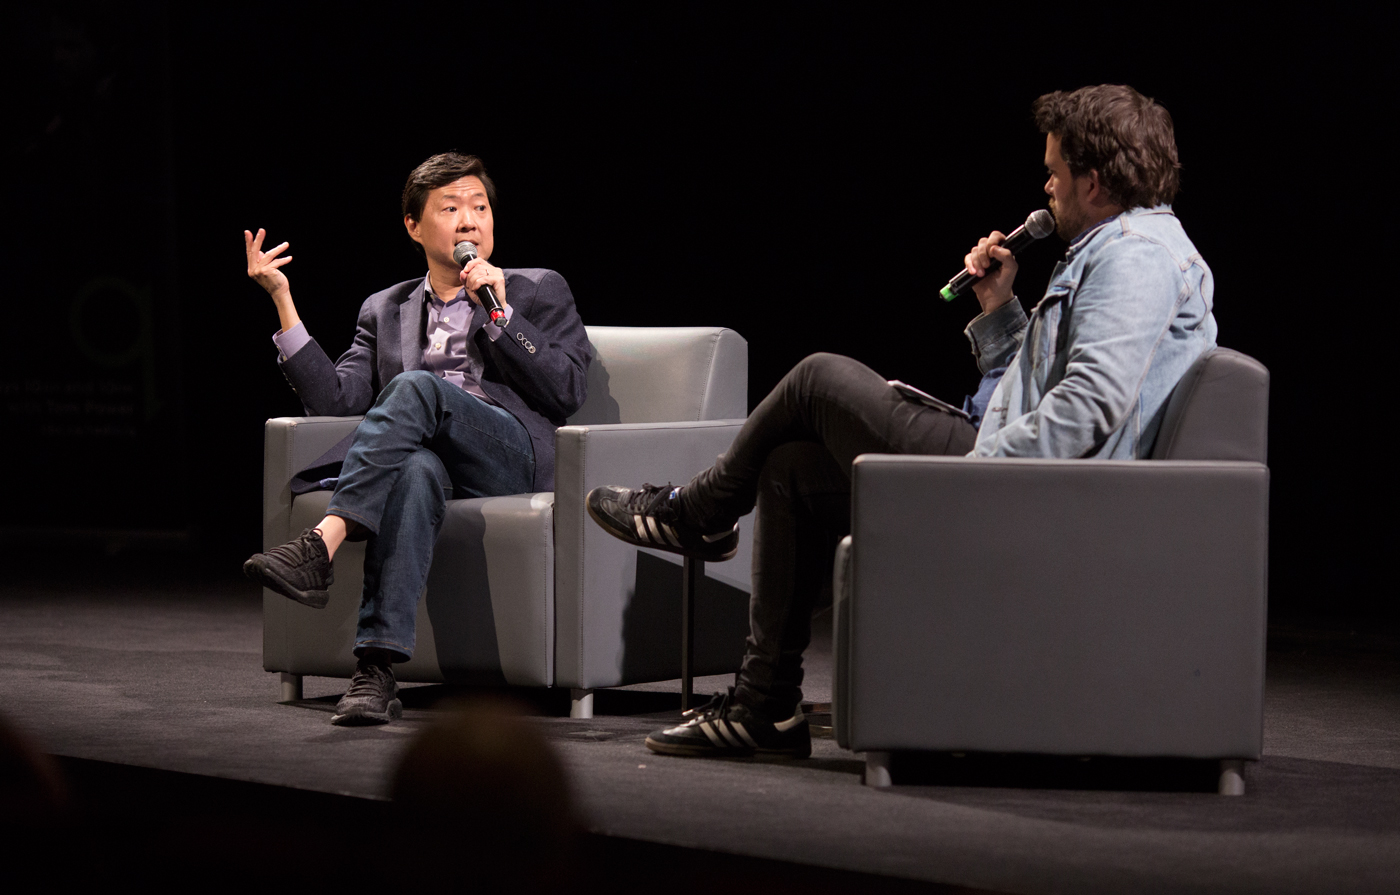 Ken Jeong In Conversation with Tom Power at the TIFF Bell Lightbox for Just For Laughs 42.